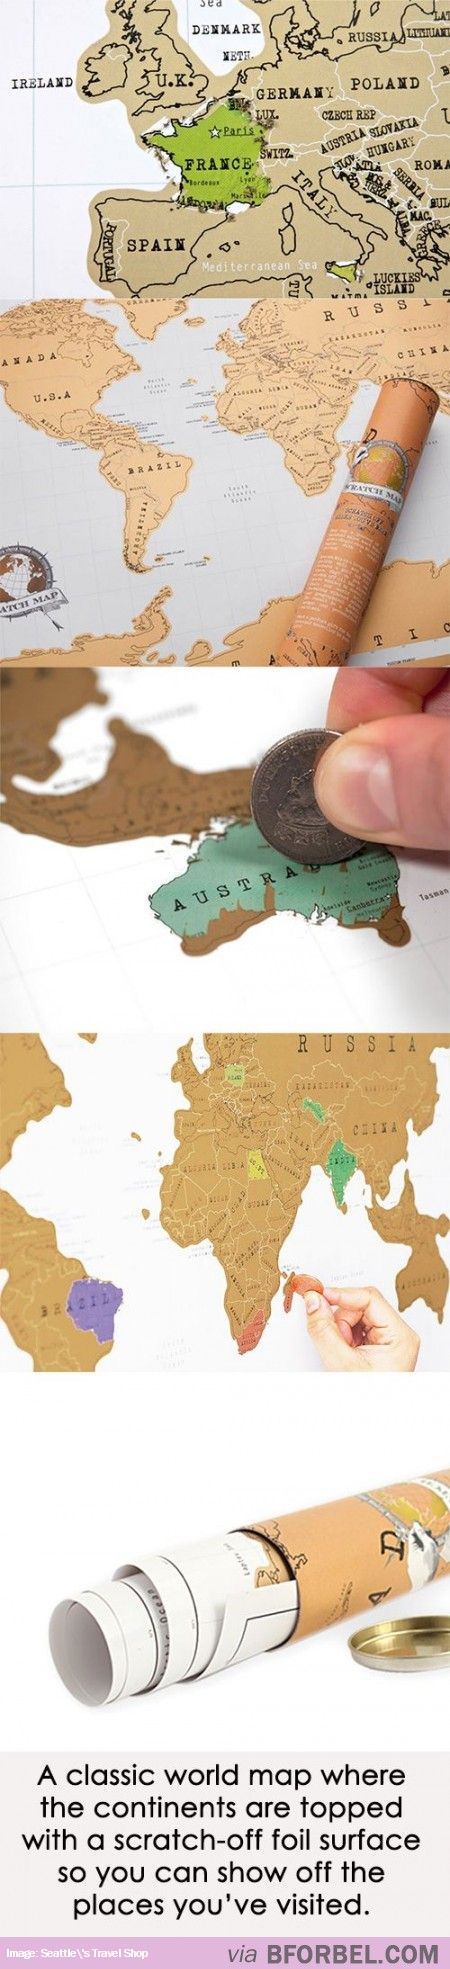 Pin by addie knight on travel the world pinterest students we just bought an interactive world map for our office but love the idea of scratching off countries as you visit them gumiabroncs Choice Image